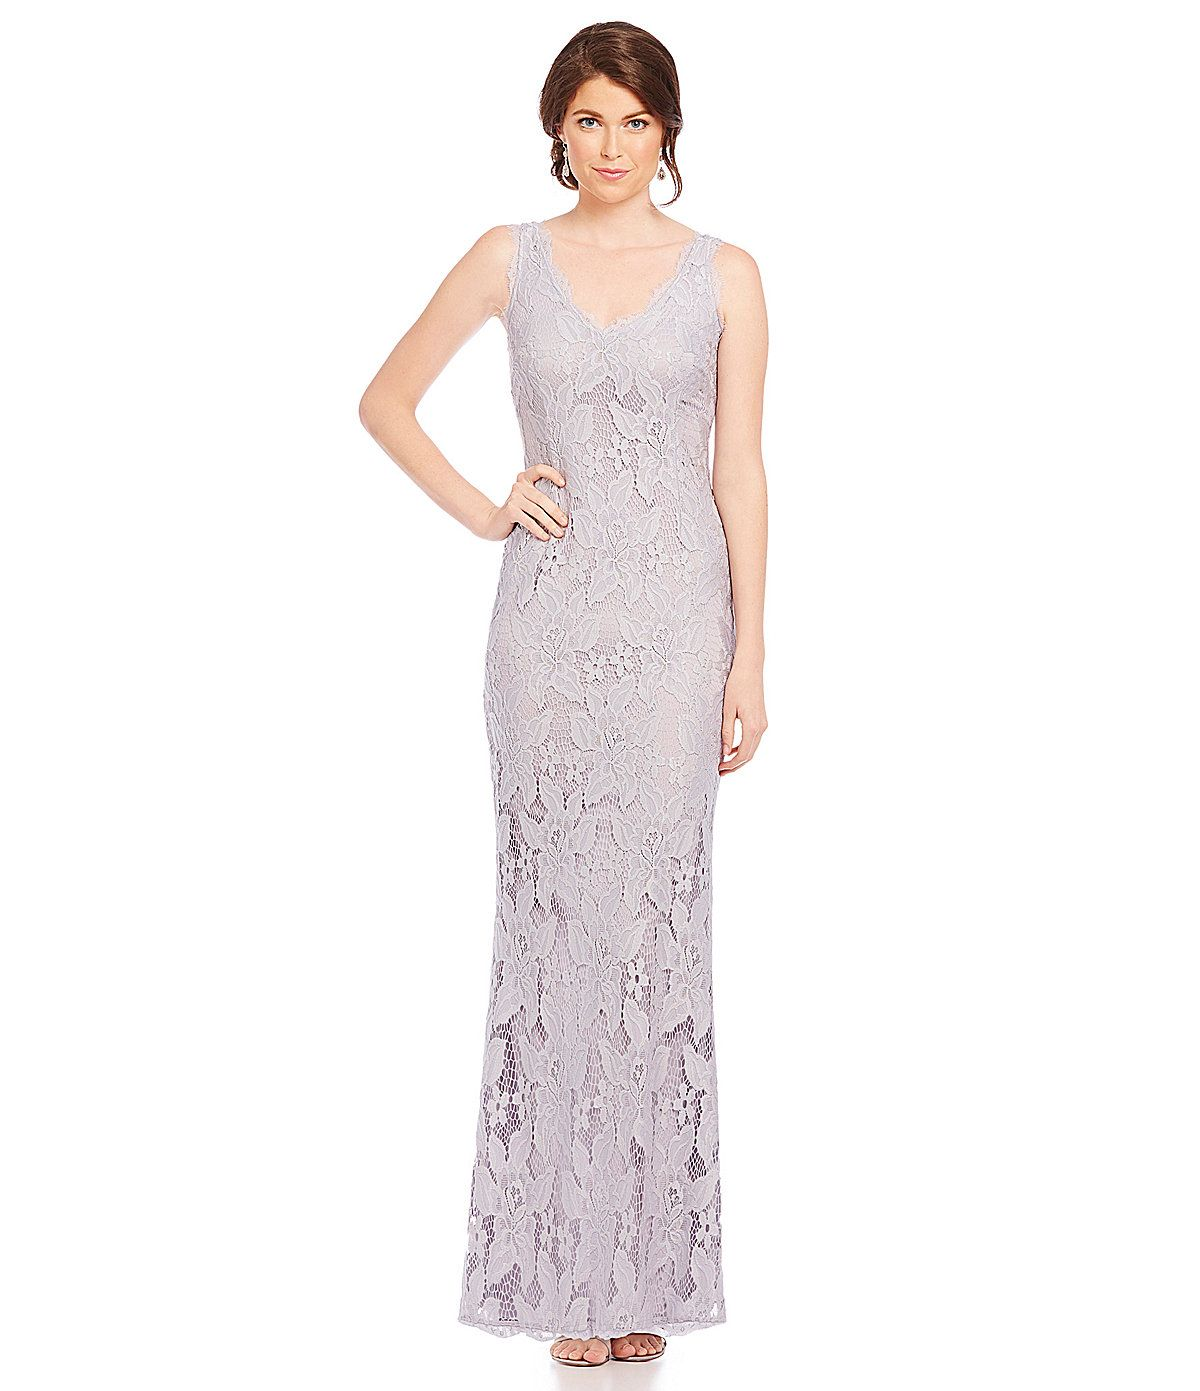 Adrianna Papell Sleeveless V-Neck Lace Gown | Dillards.com | WHAT ...